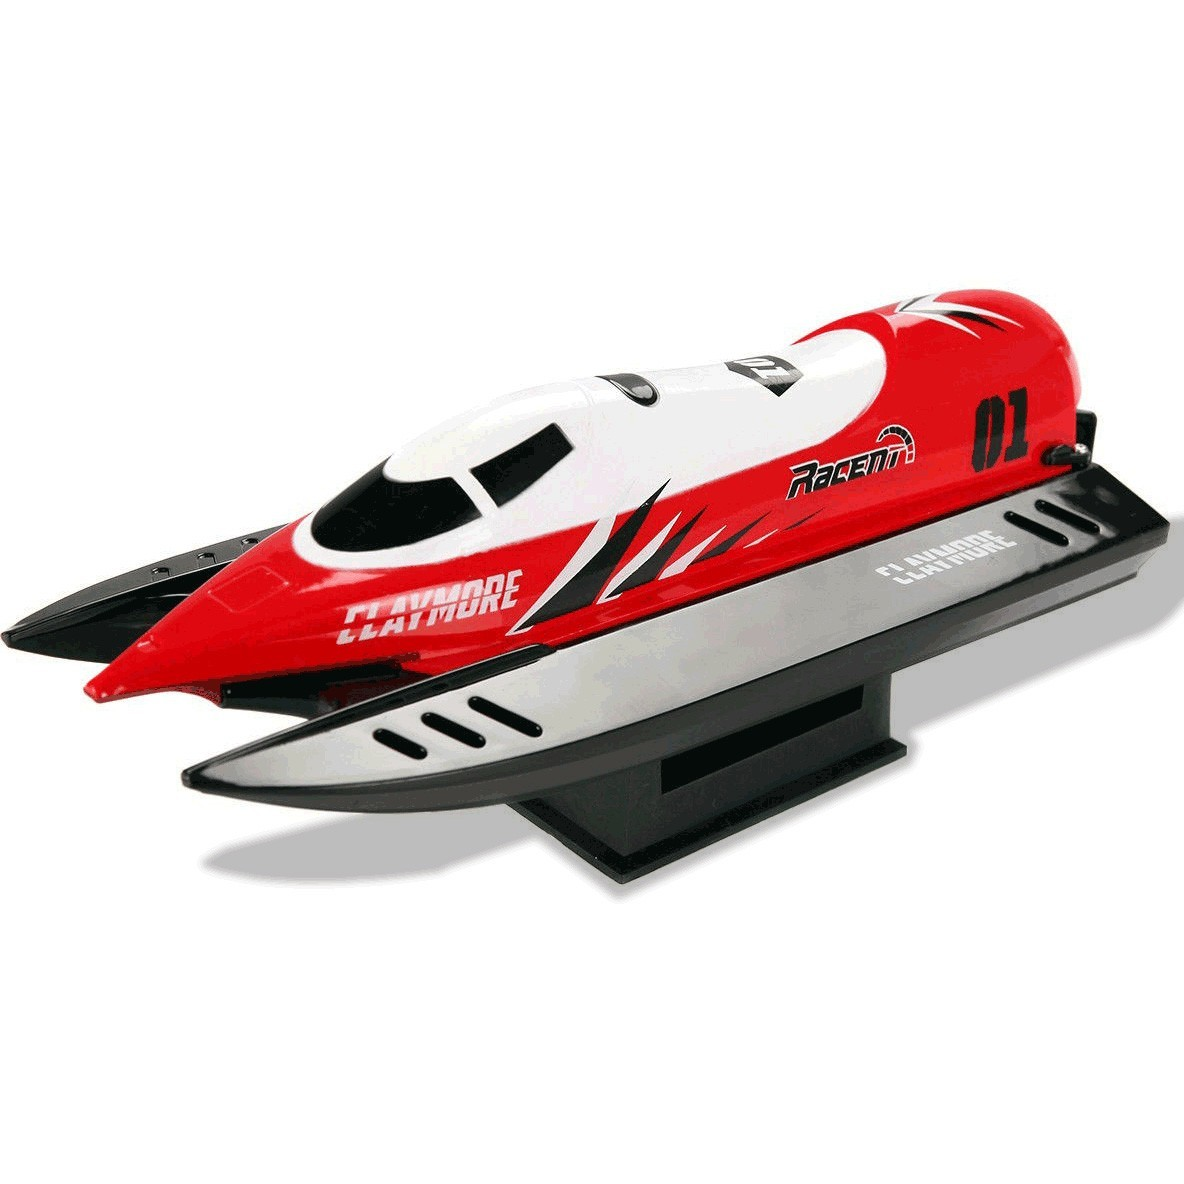 2.4G RTR Auto-roll-back Brushed High Speed RC Racing Boat by